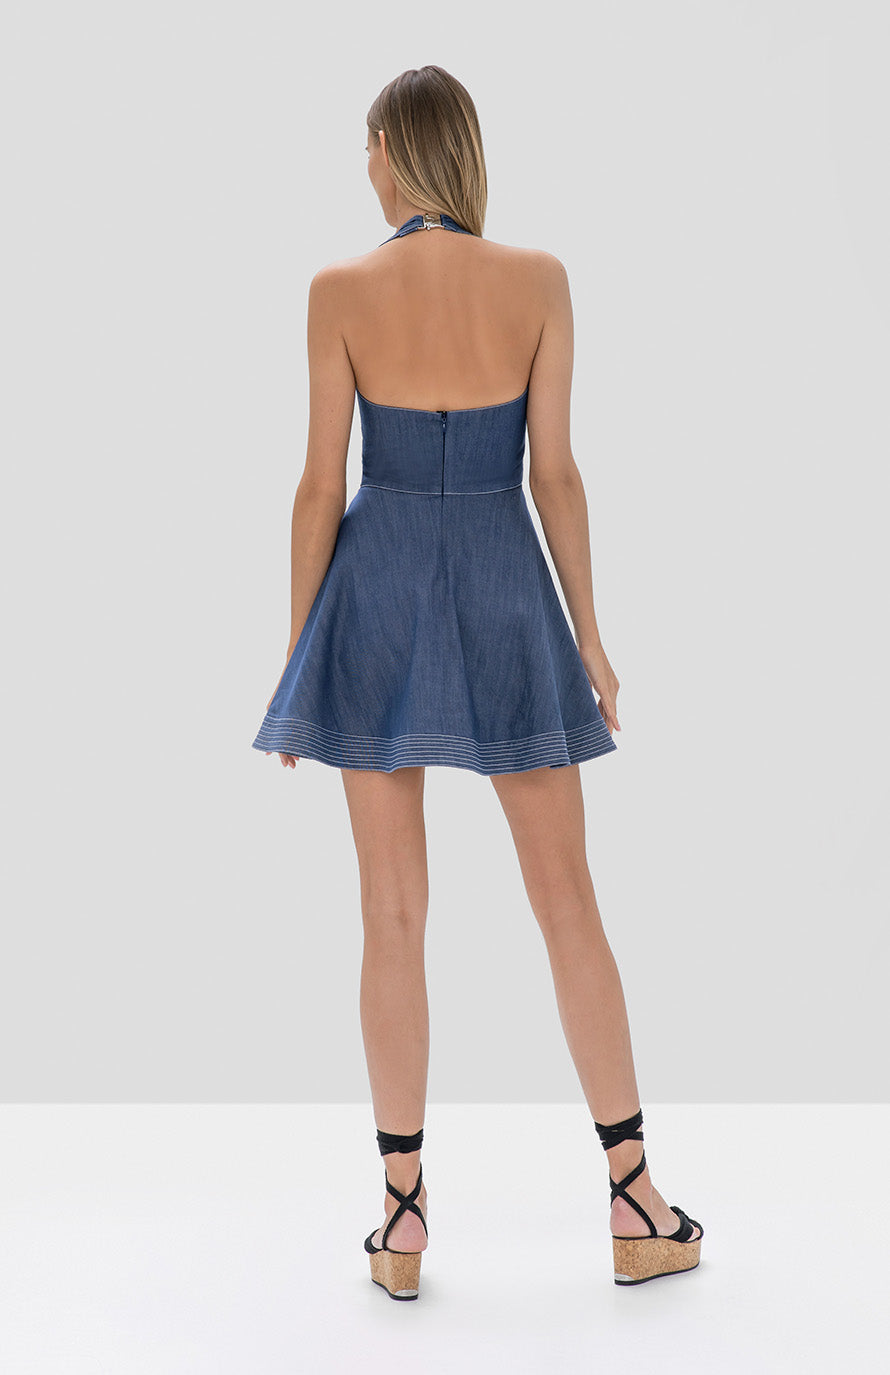 tarrana dress stone blue - Rear View